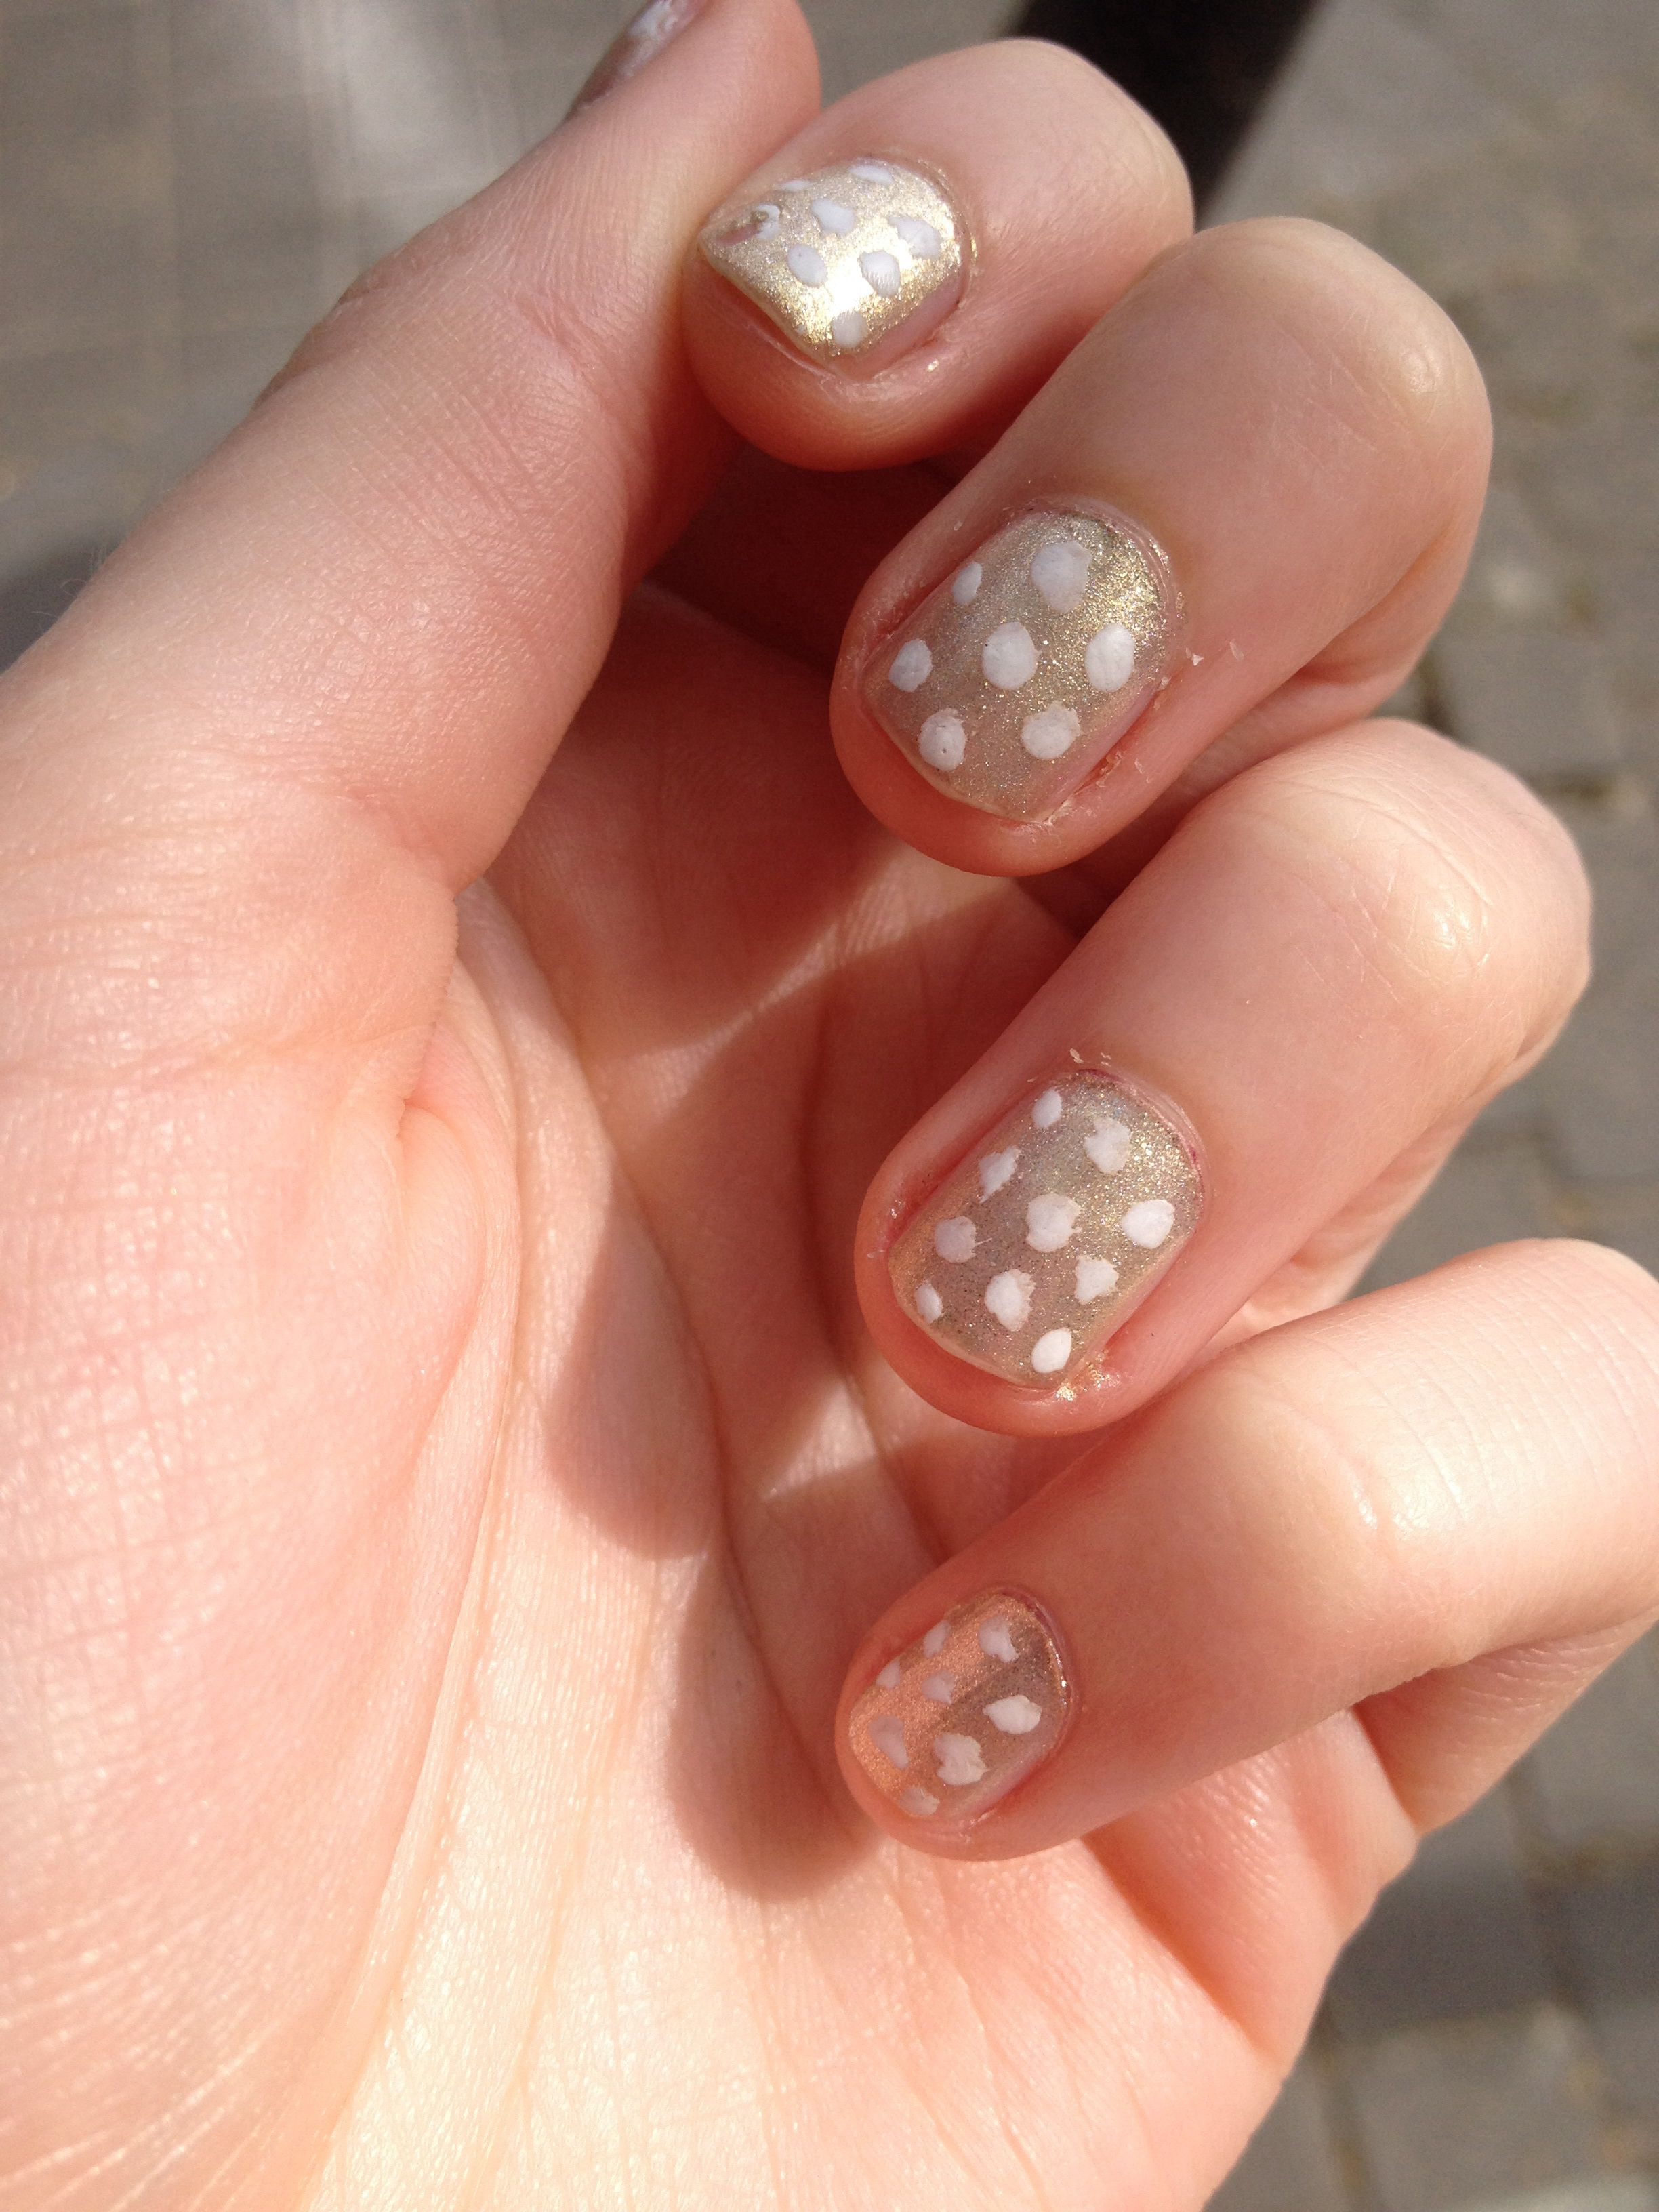 Nails gold white polkadots